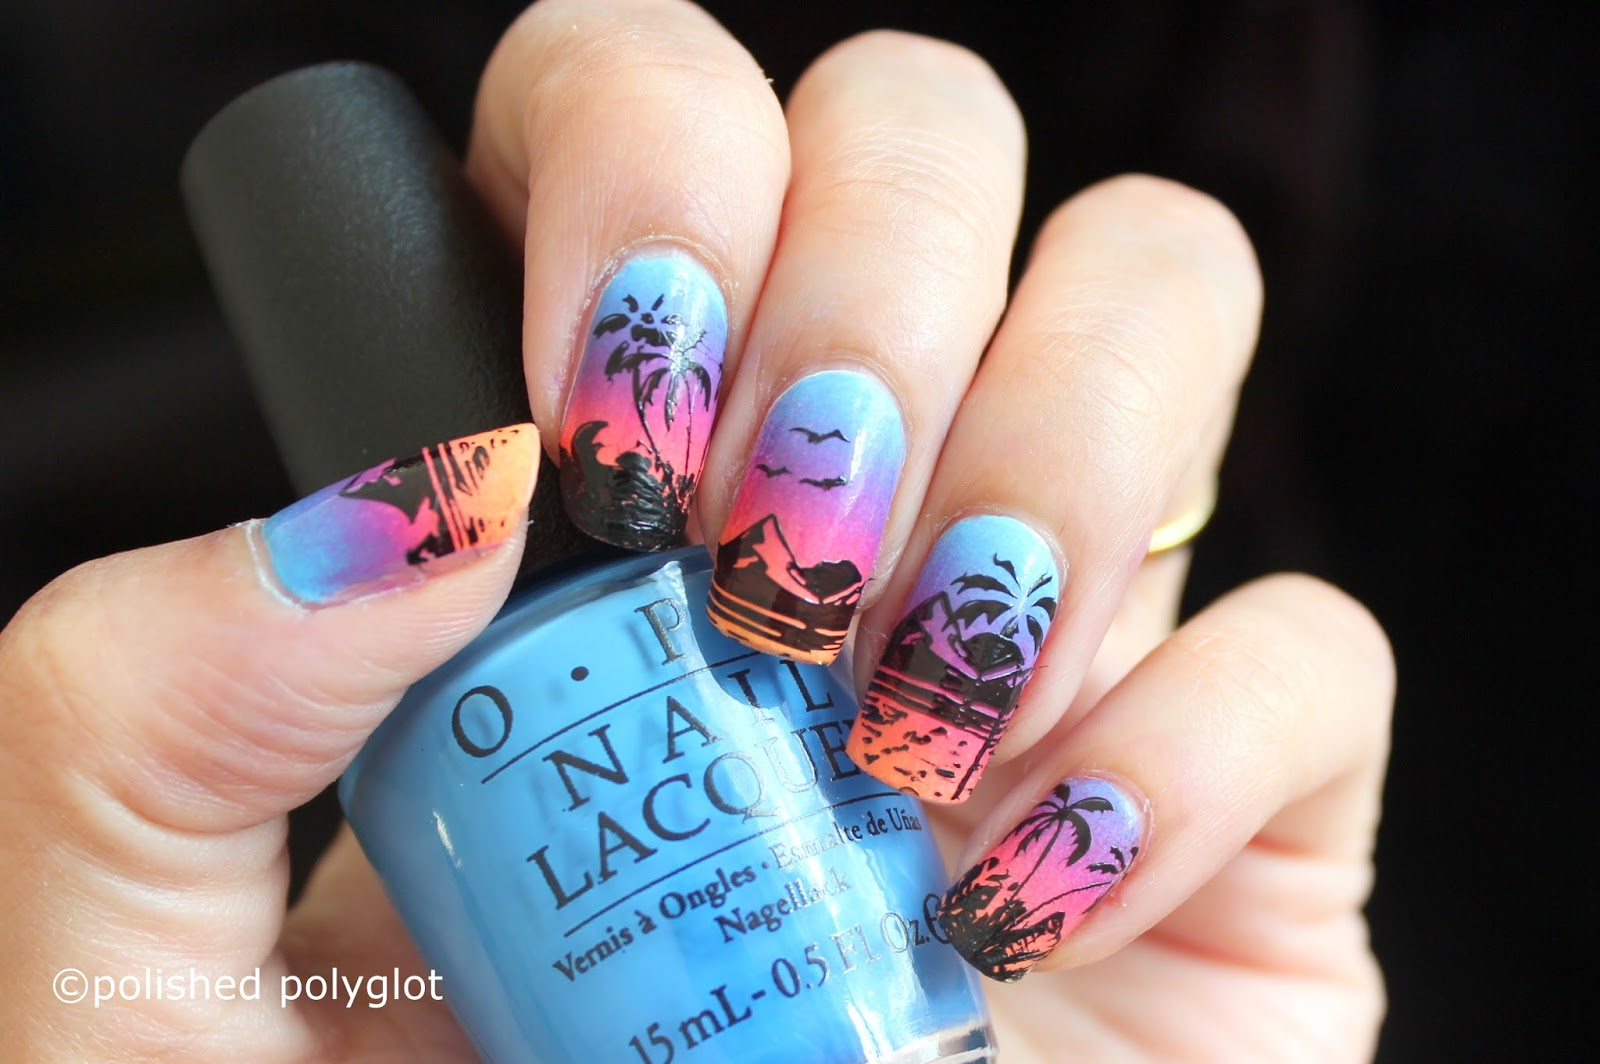 Nail art sunrise on the beach inspired nail design 26gnai art design this time the 26 great nail art ideas challenge is about beach or animal silhouettes so i thought to do a sunrise on the beach inspired prinsesfo Gallery